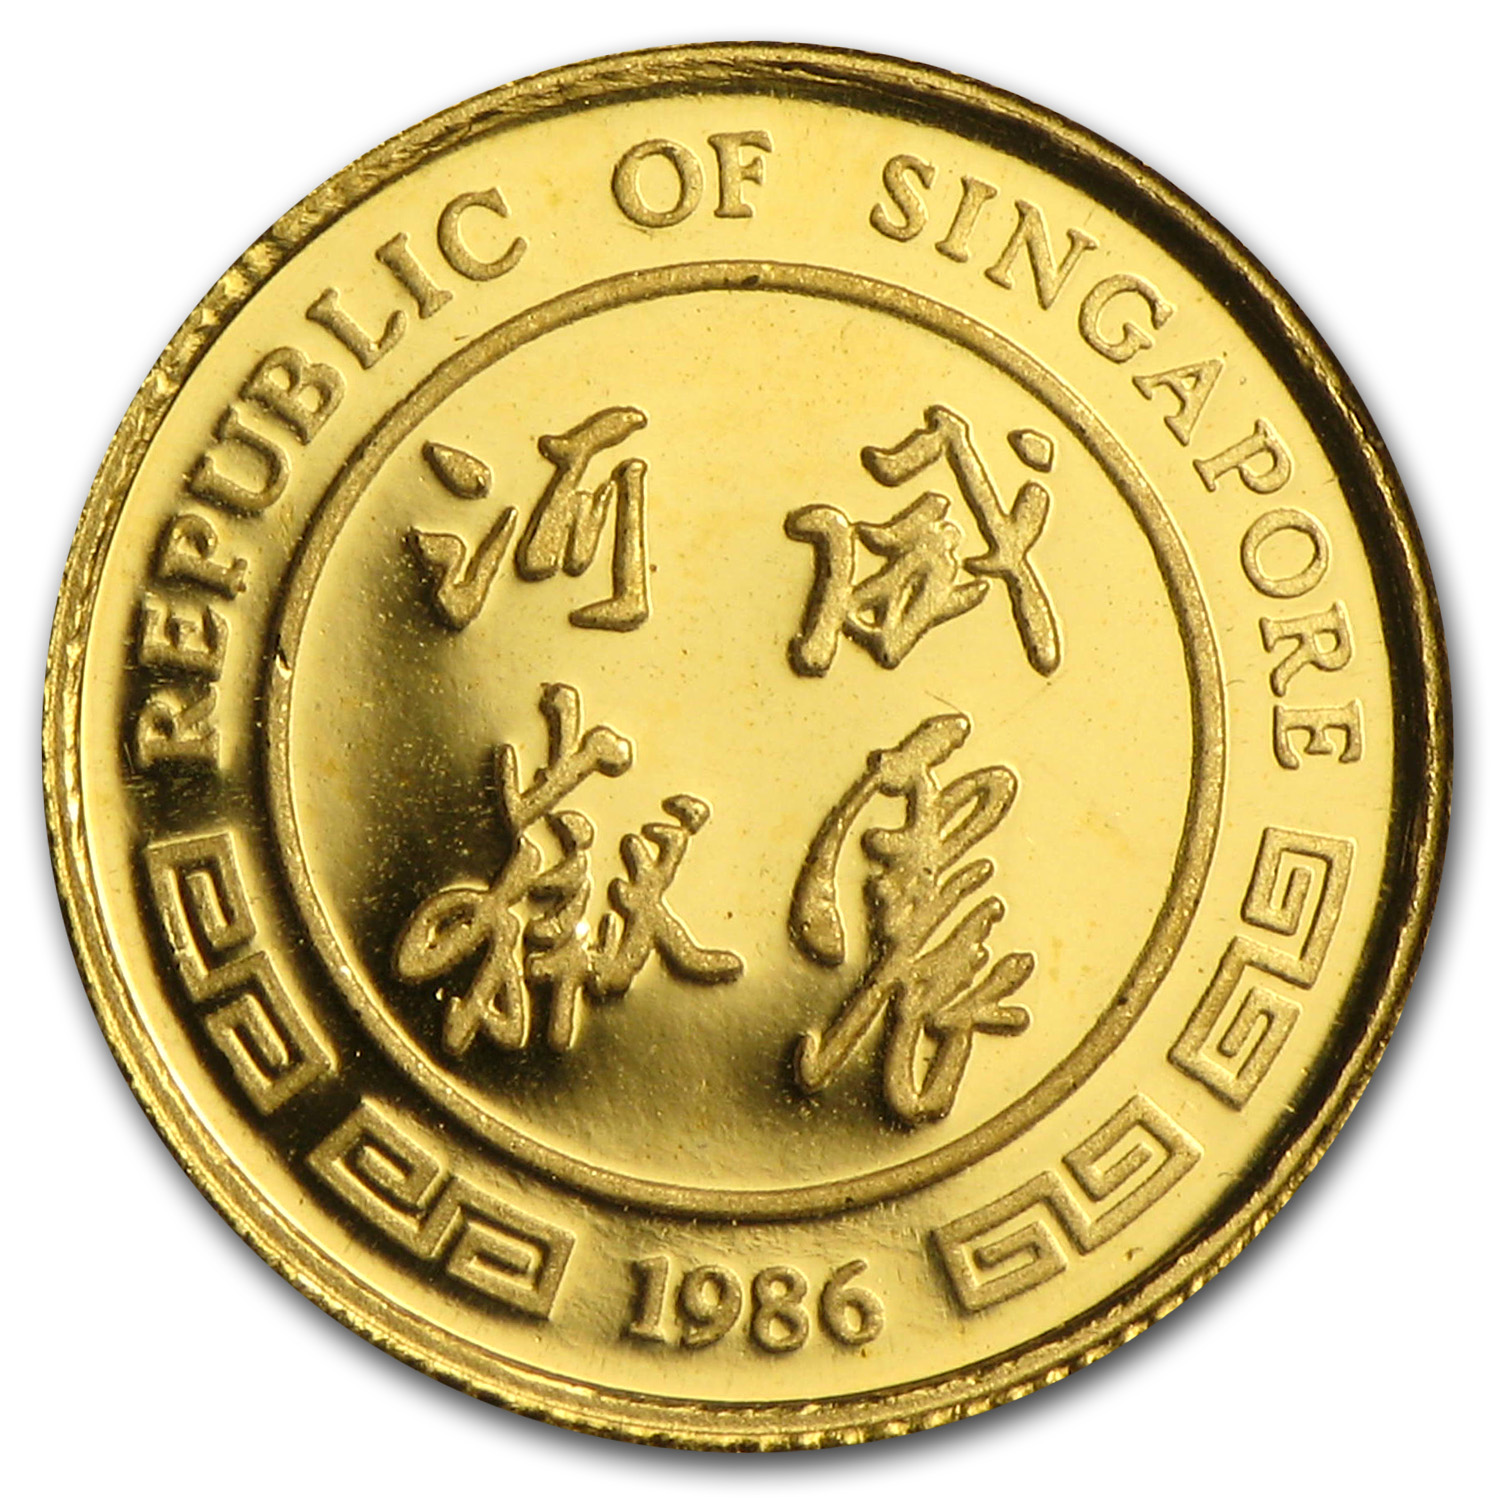 1986 Singapore 1/20 Proof Gold 5 Singold Tiger